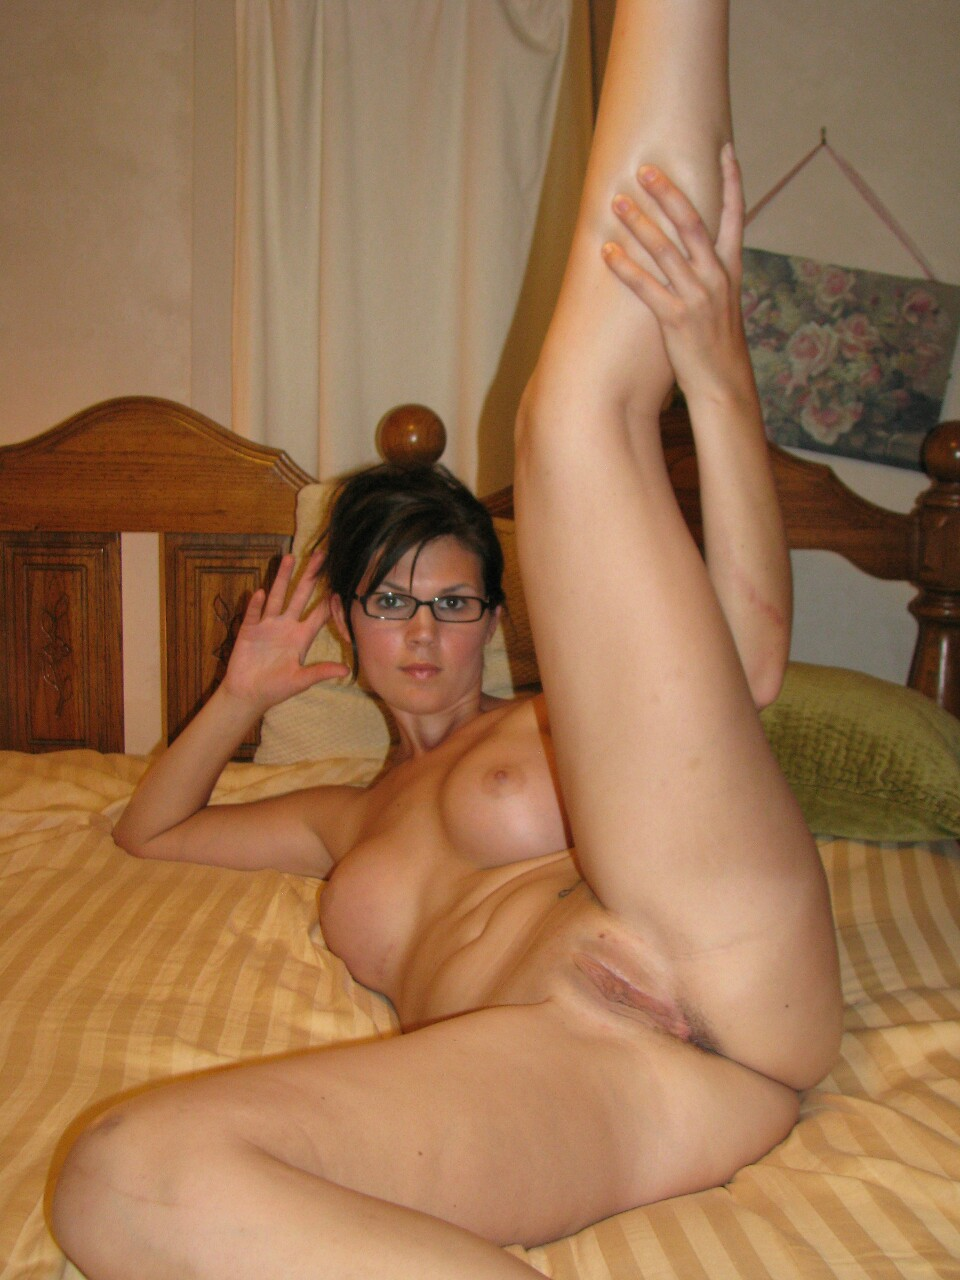 Mature legs open nude labour. will